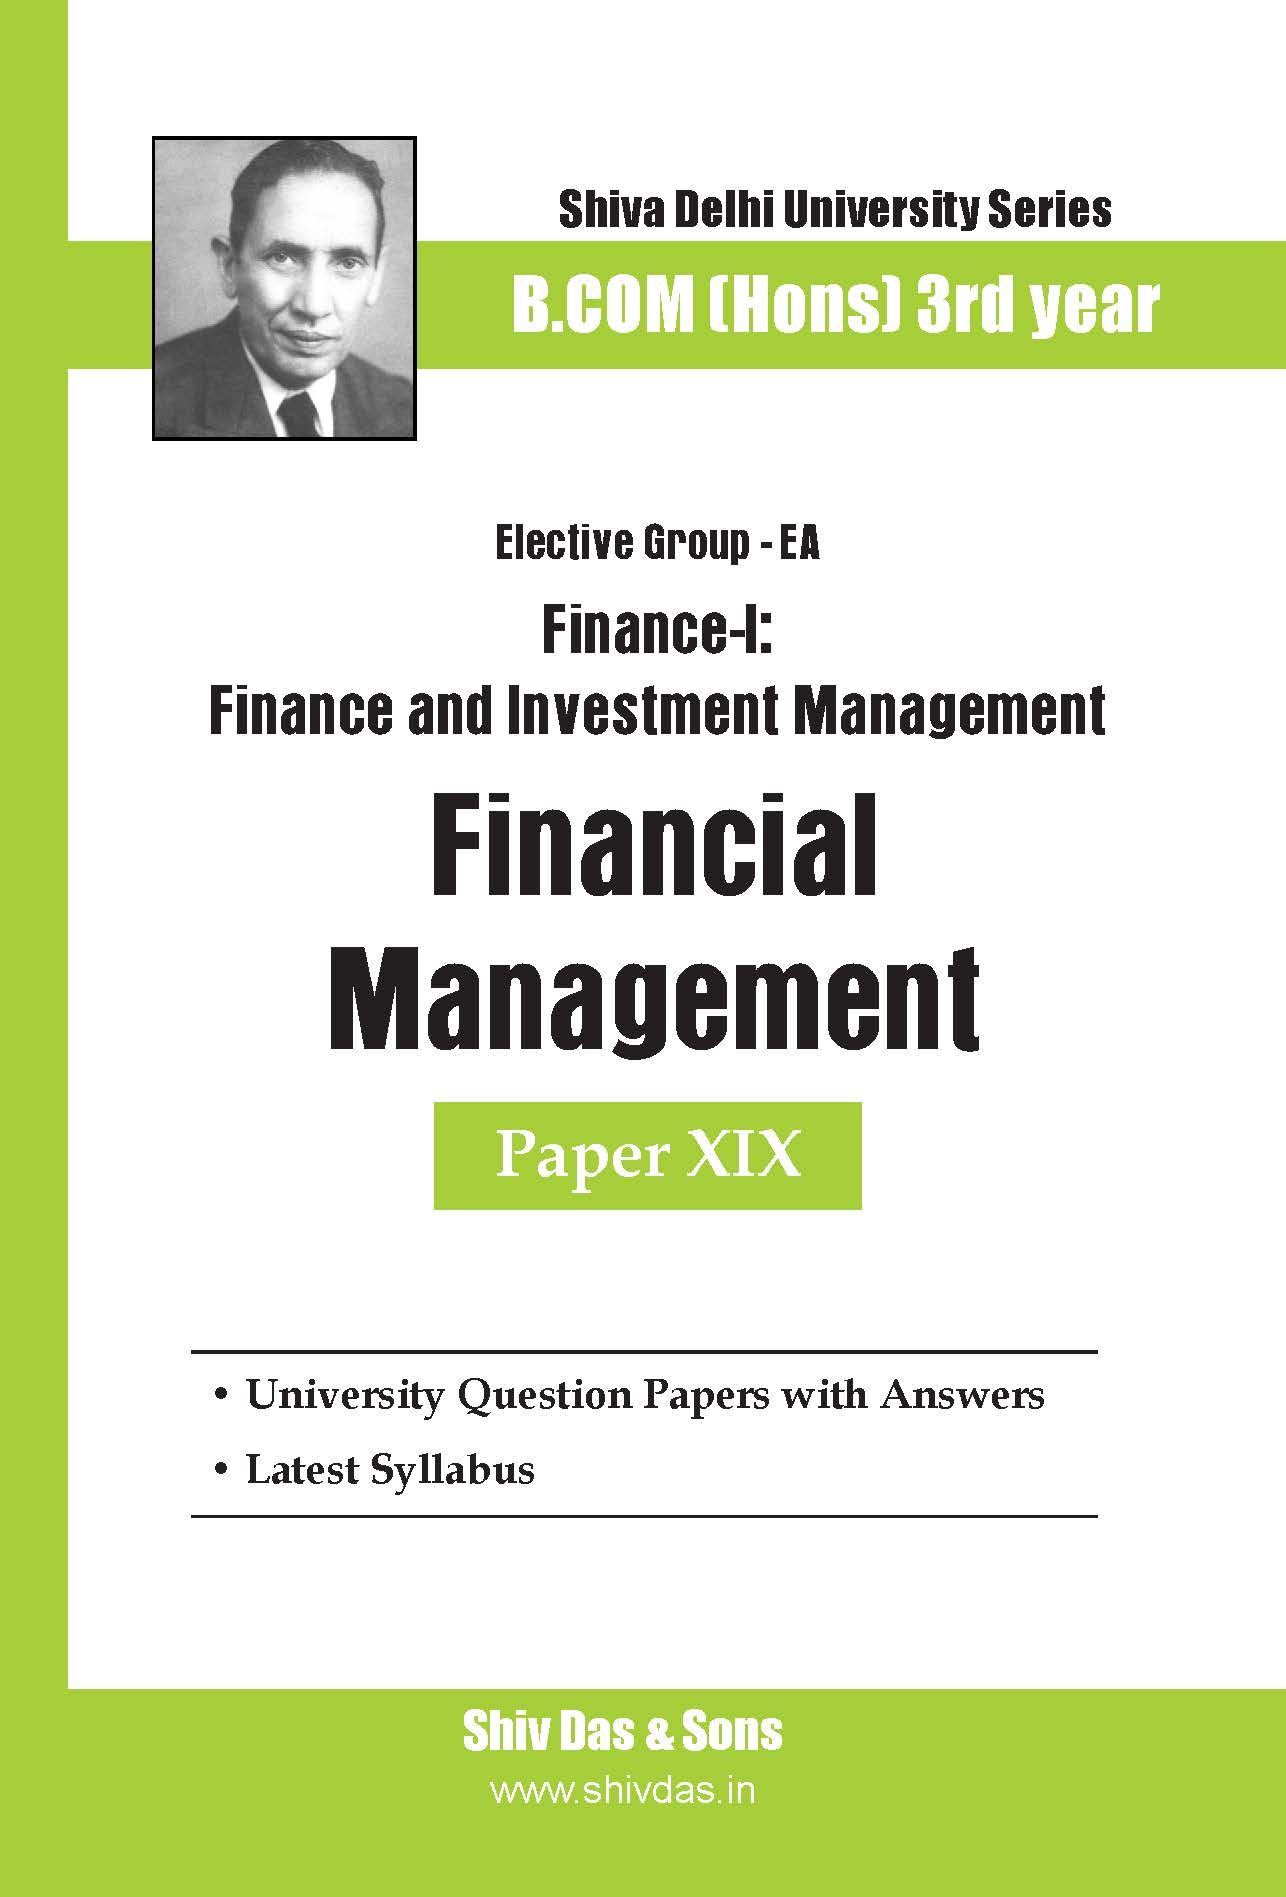 Financial Management for  B.Com Hons SOL/External 3rd Year